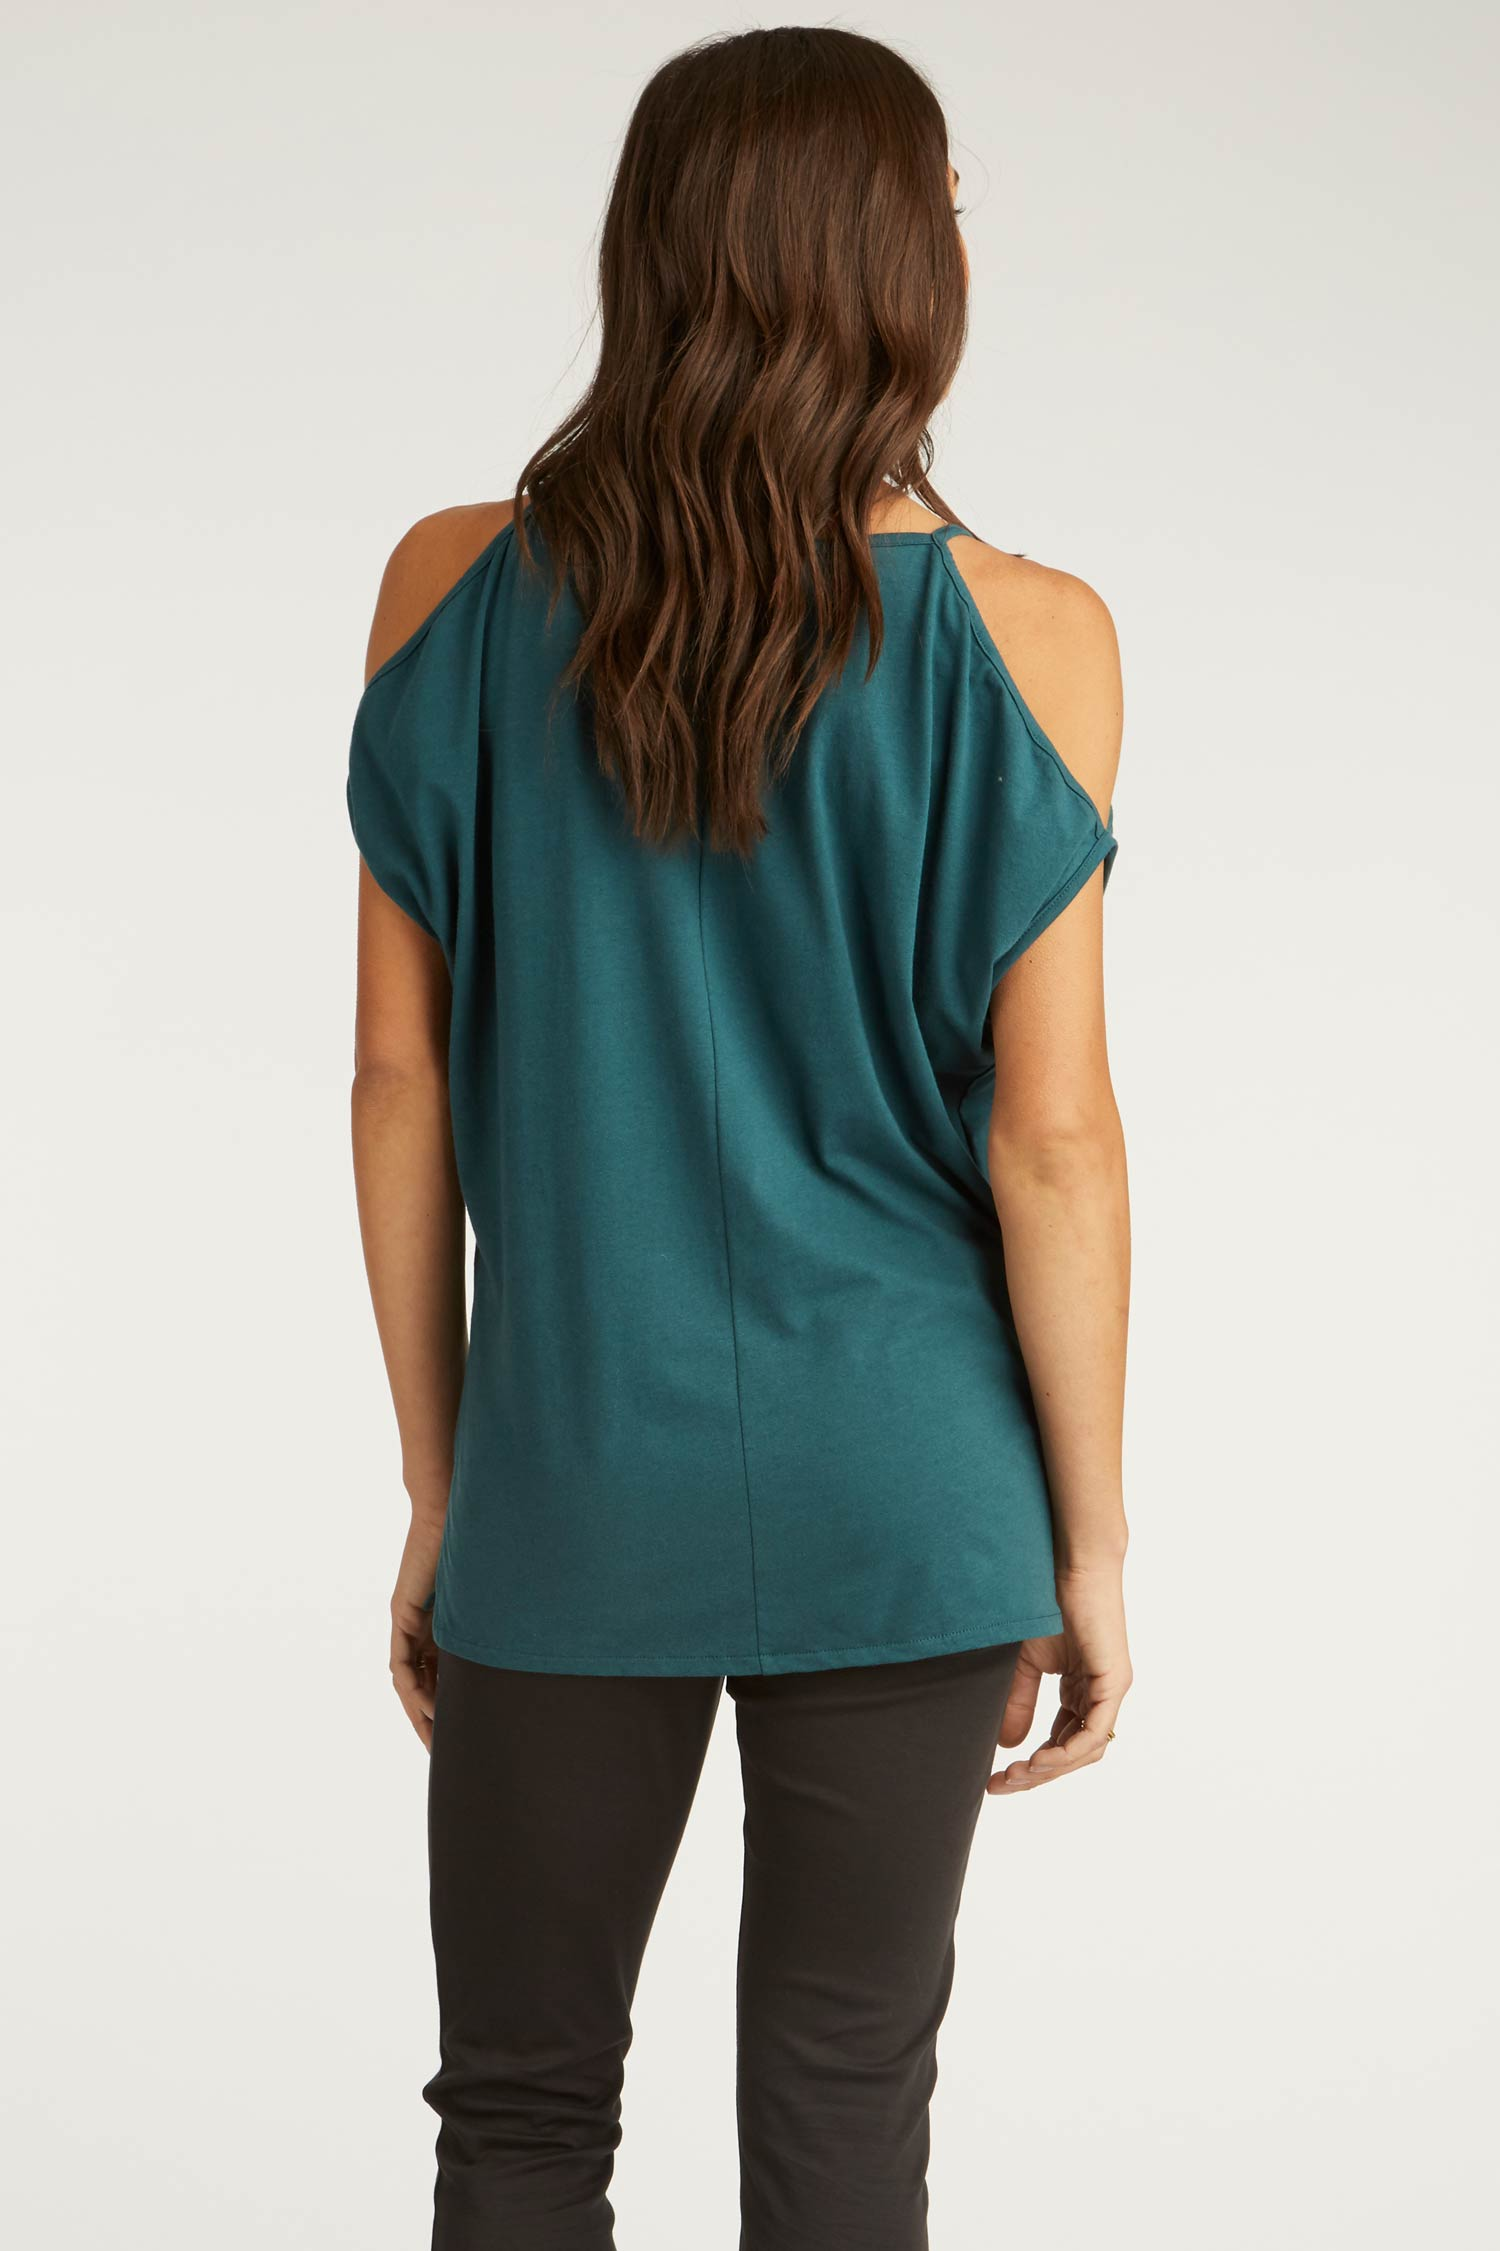 Womens Organic Cotton Blouse | Cold Shoulder Top in Jade Green | Indigenous